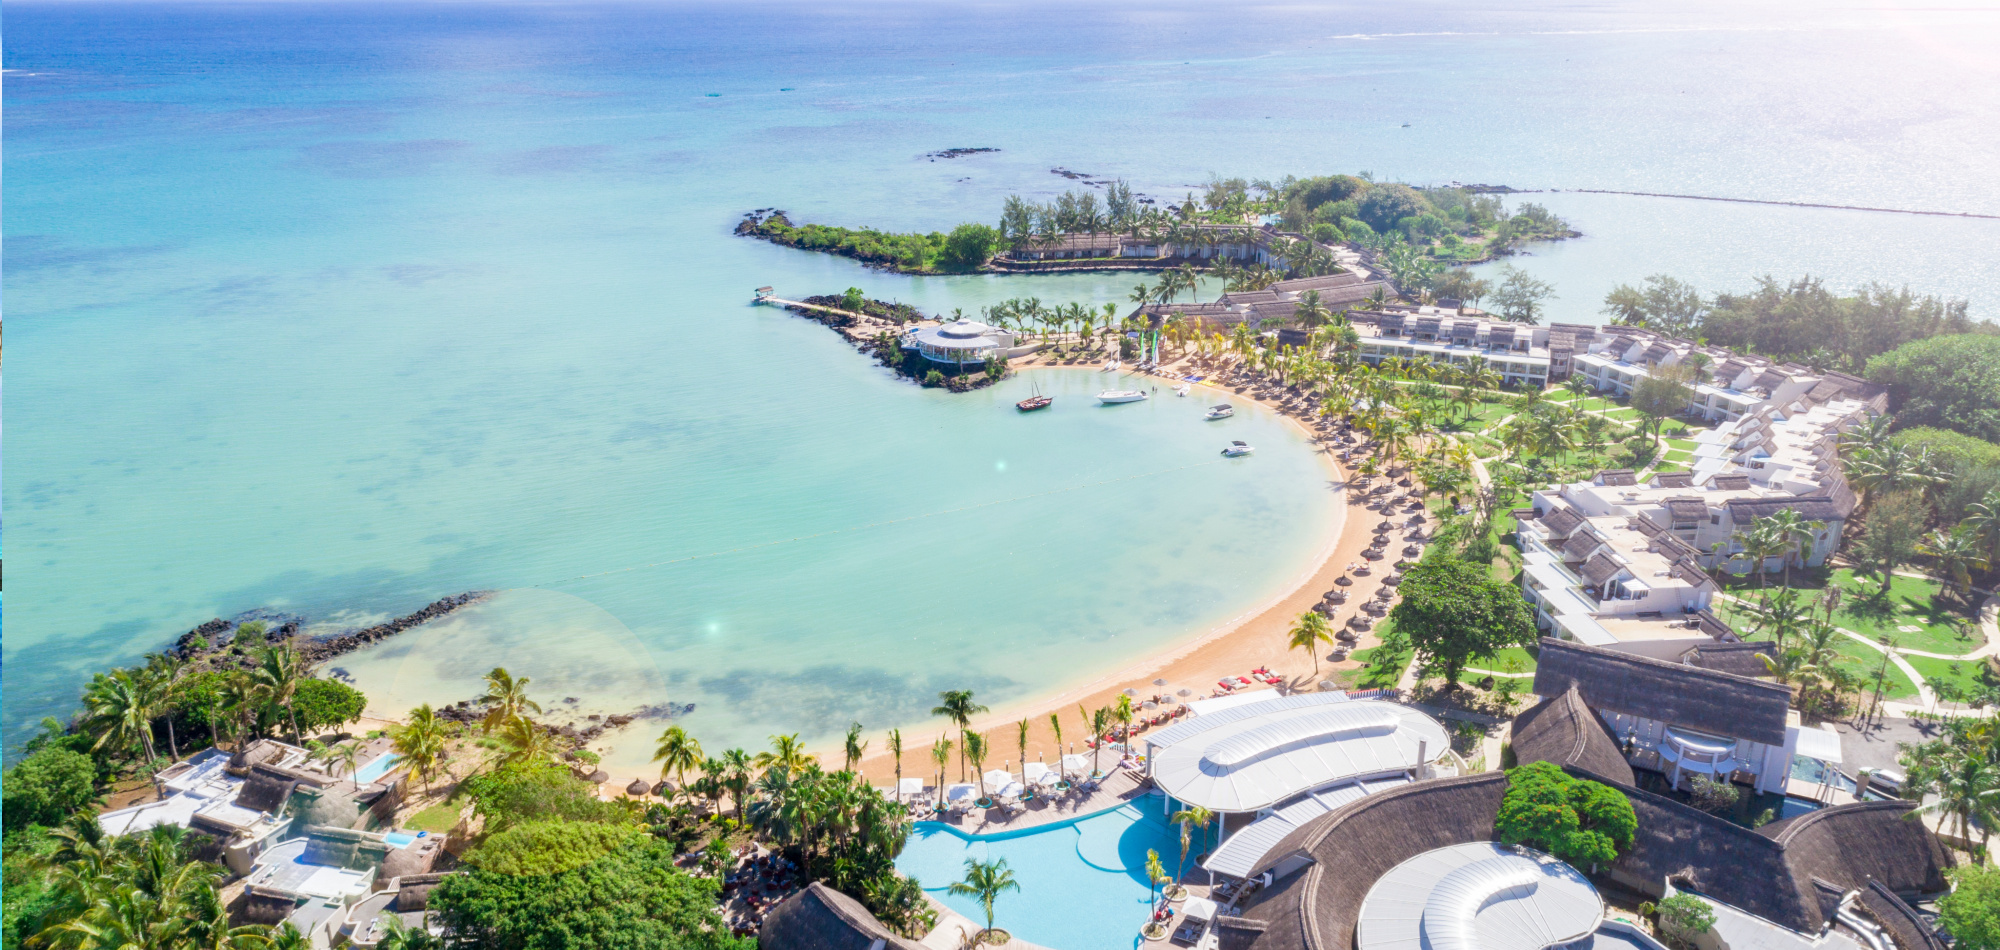 LUX Grand Gaube Mauritius Luxury Holiday